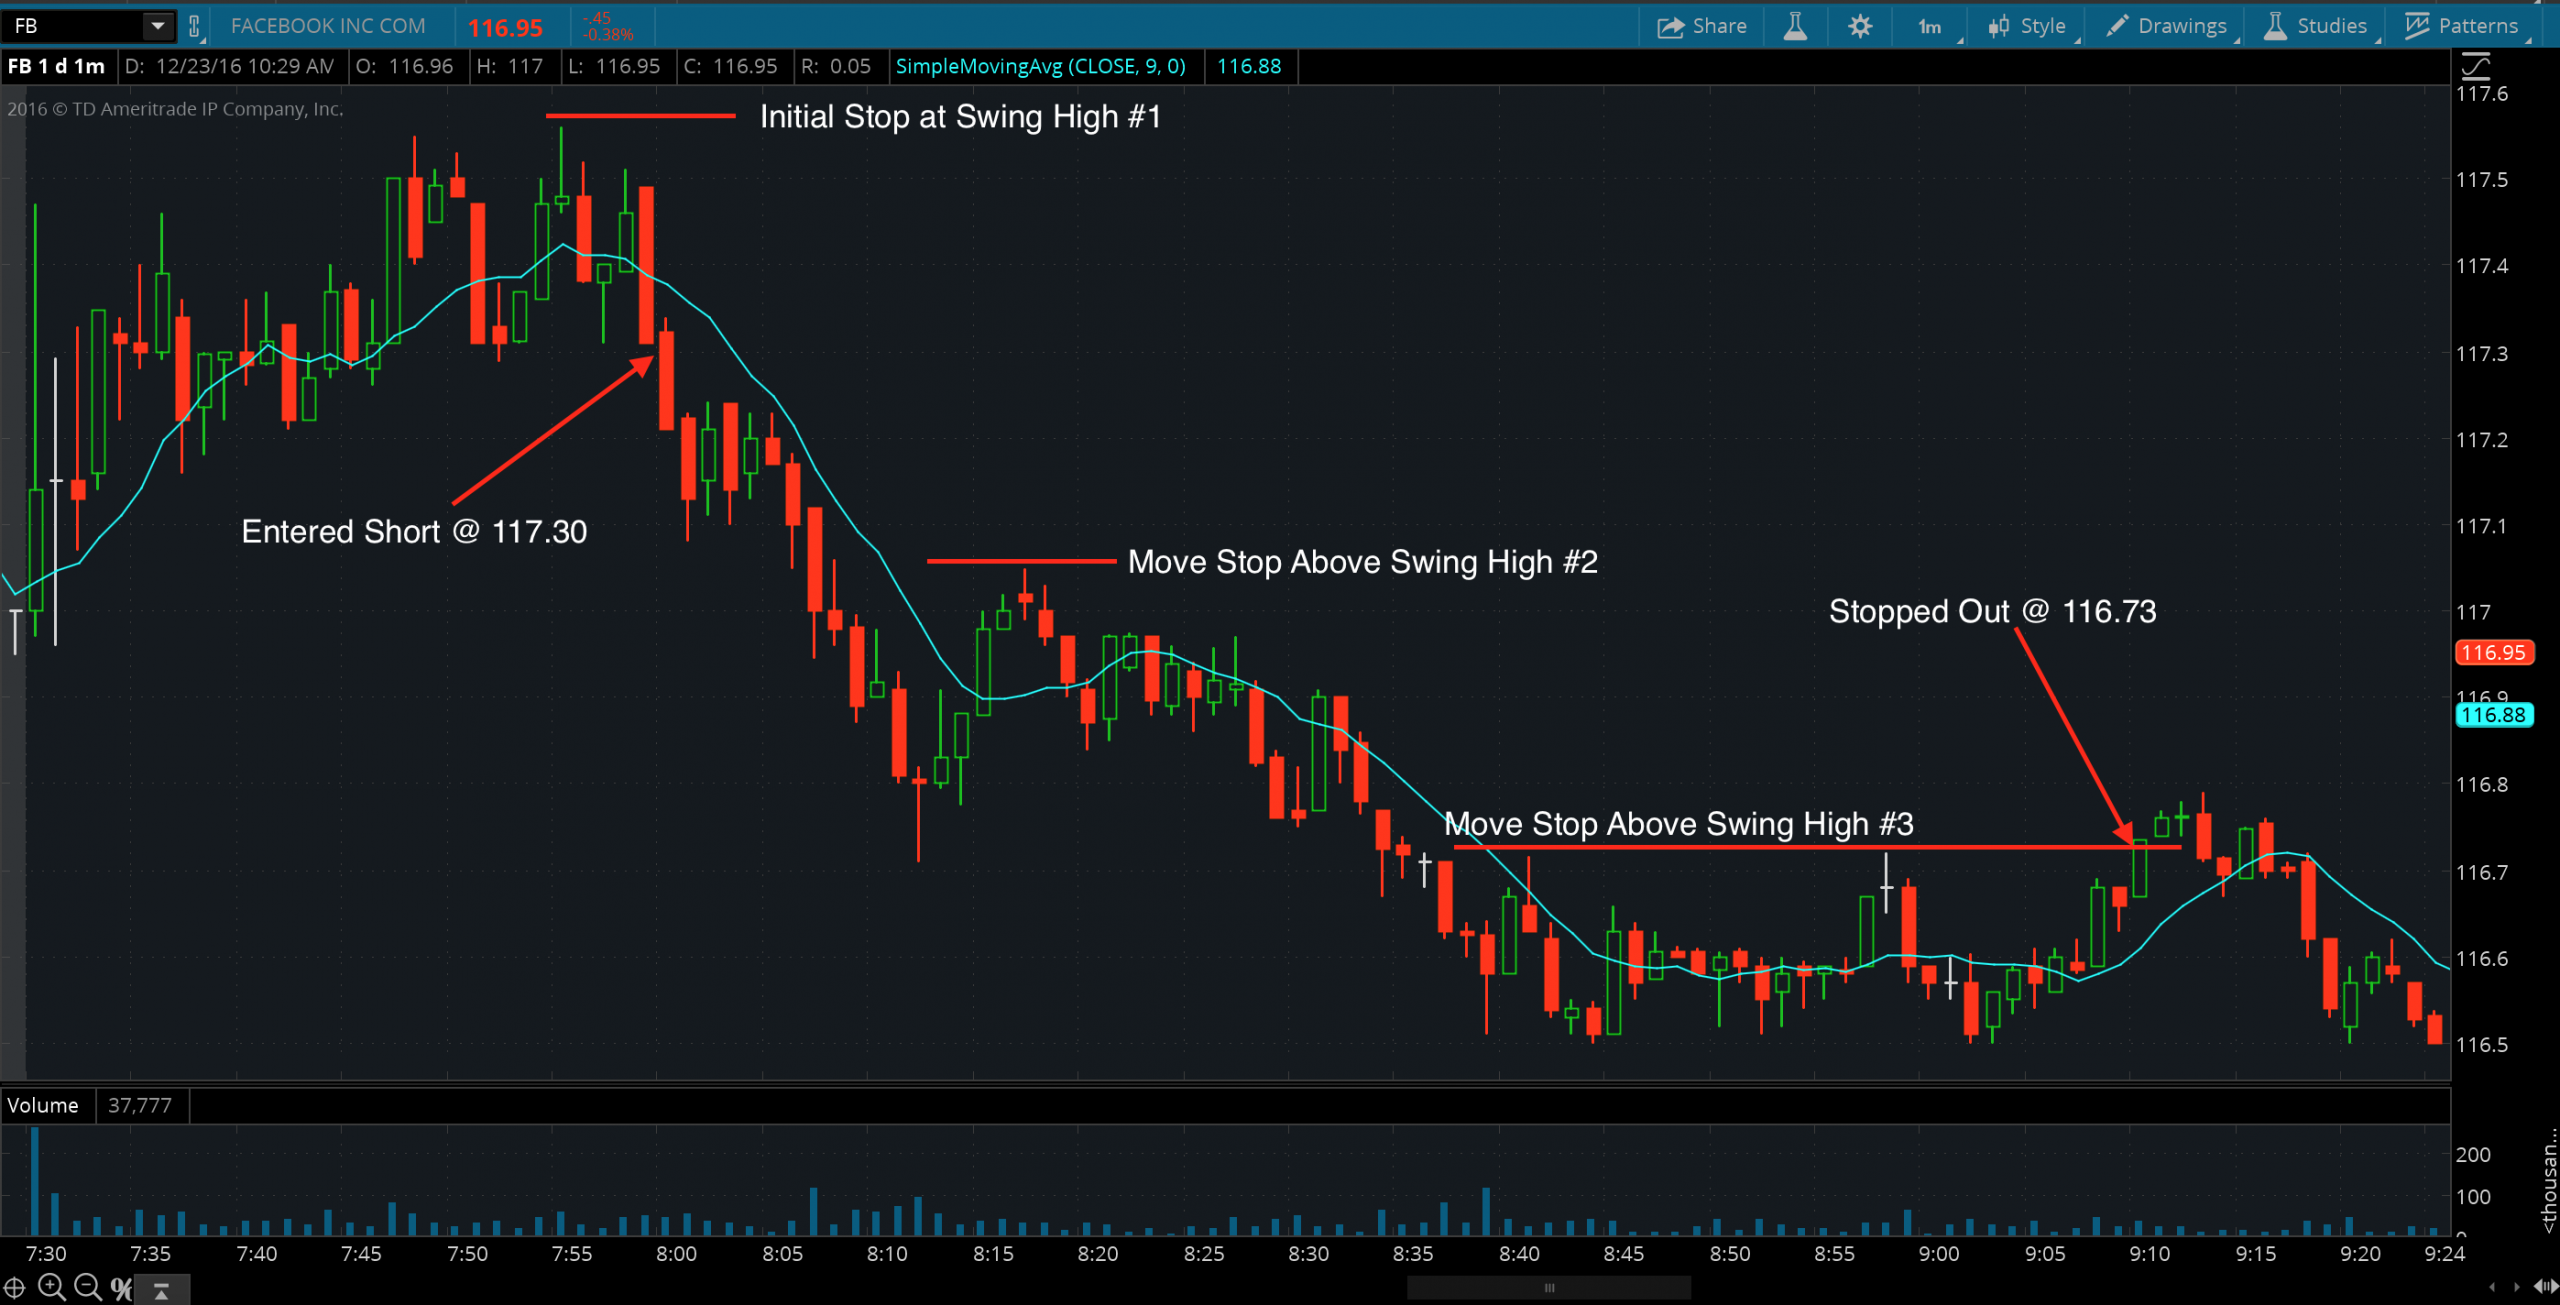 Swing High/Low Trailing Stop